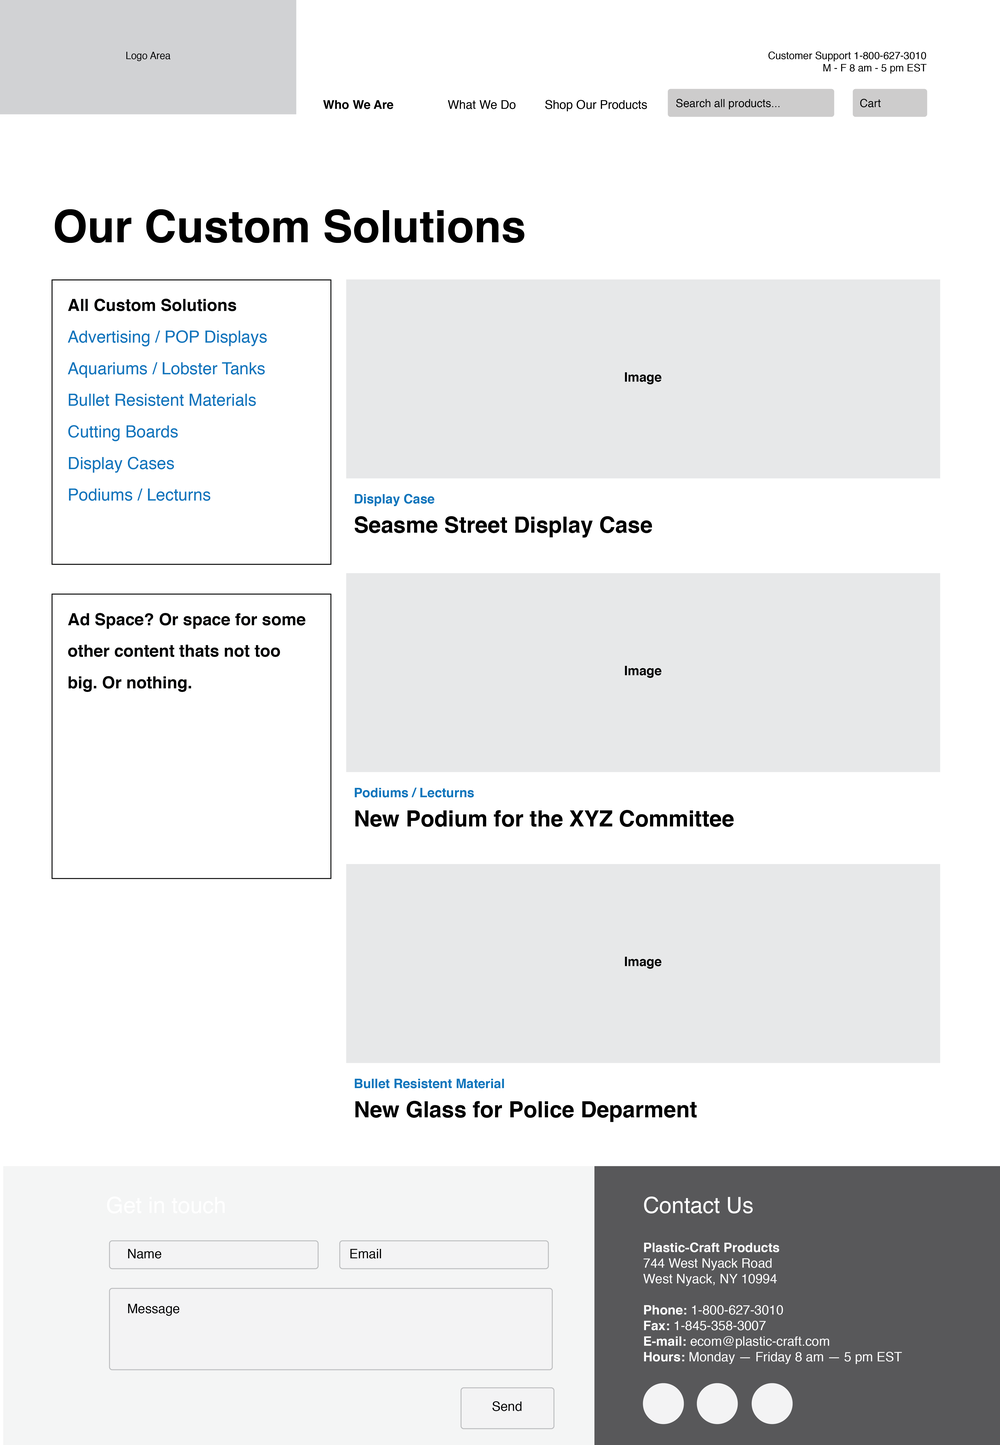 Plastic-Craft_CustomSolutions-07.png